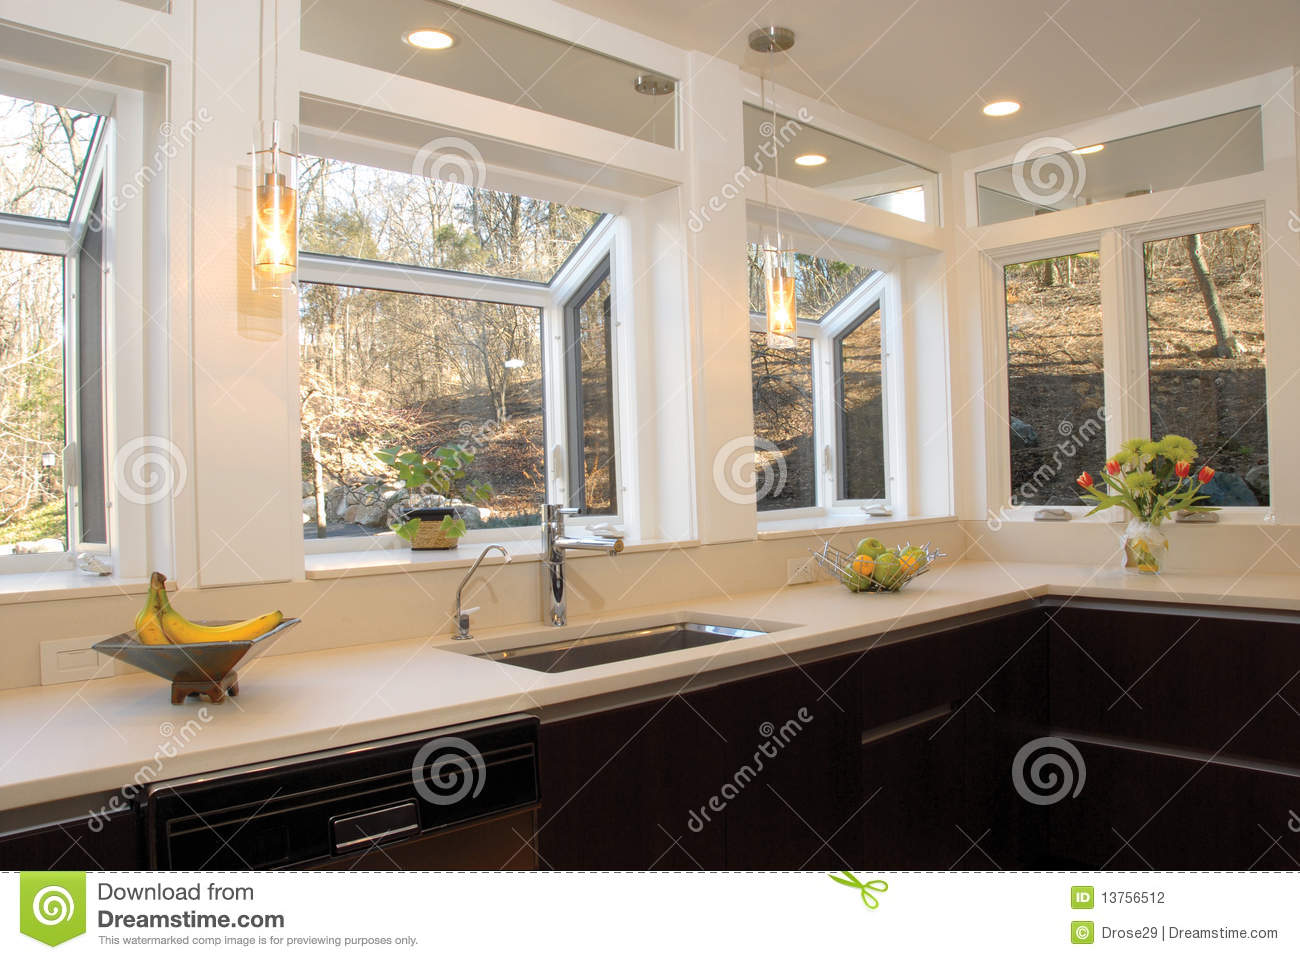 Kitchen Countertop With Many Windows Stock Photography